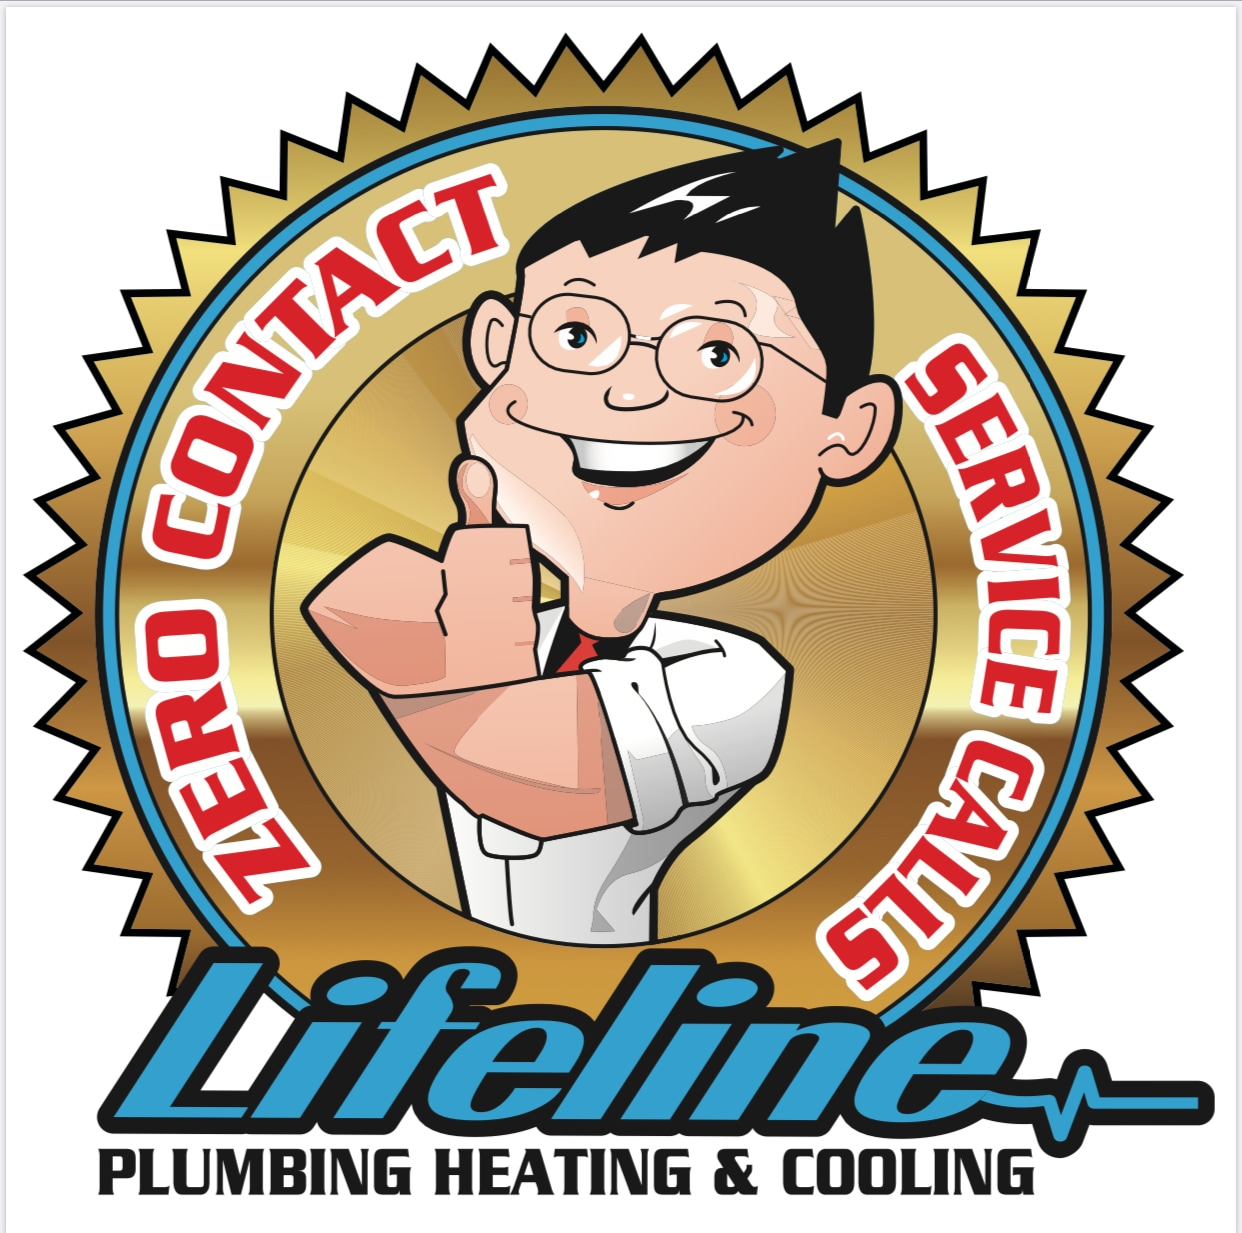 Lifeline Plumbing Heating & Cooling